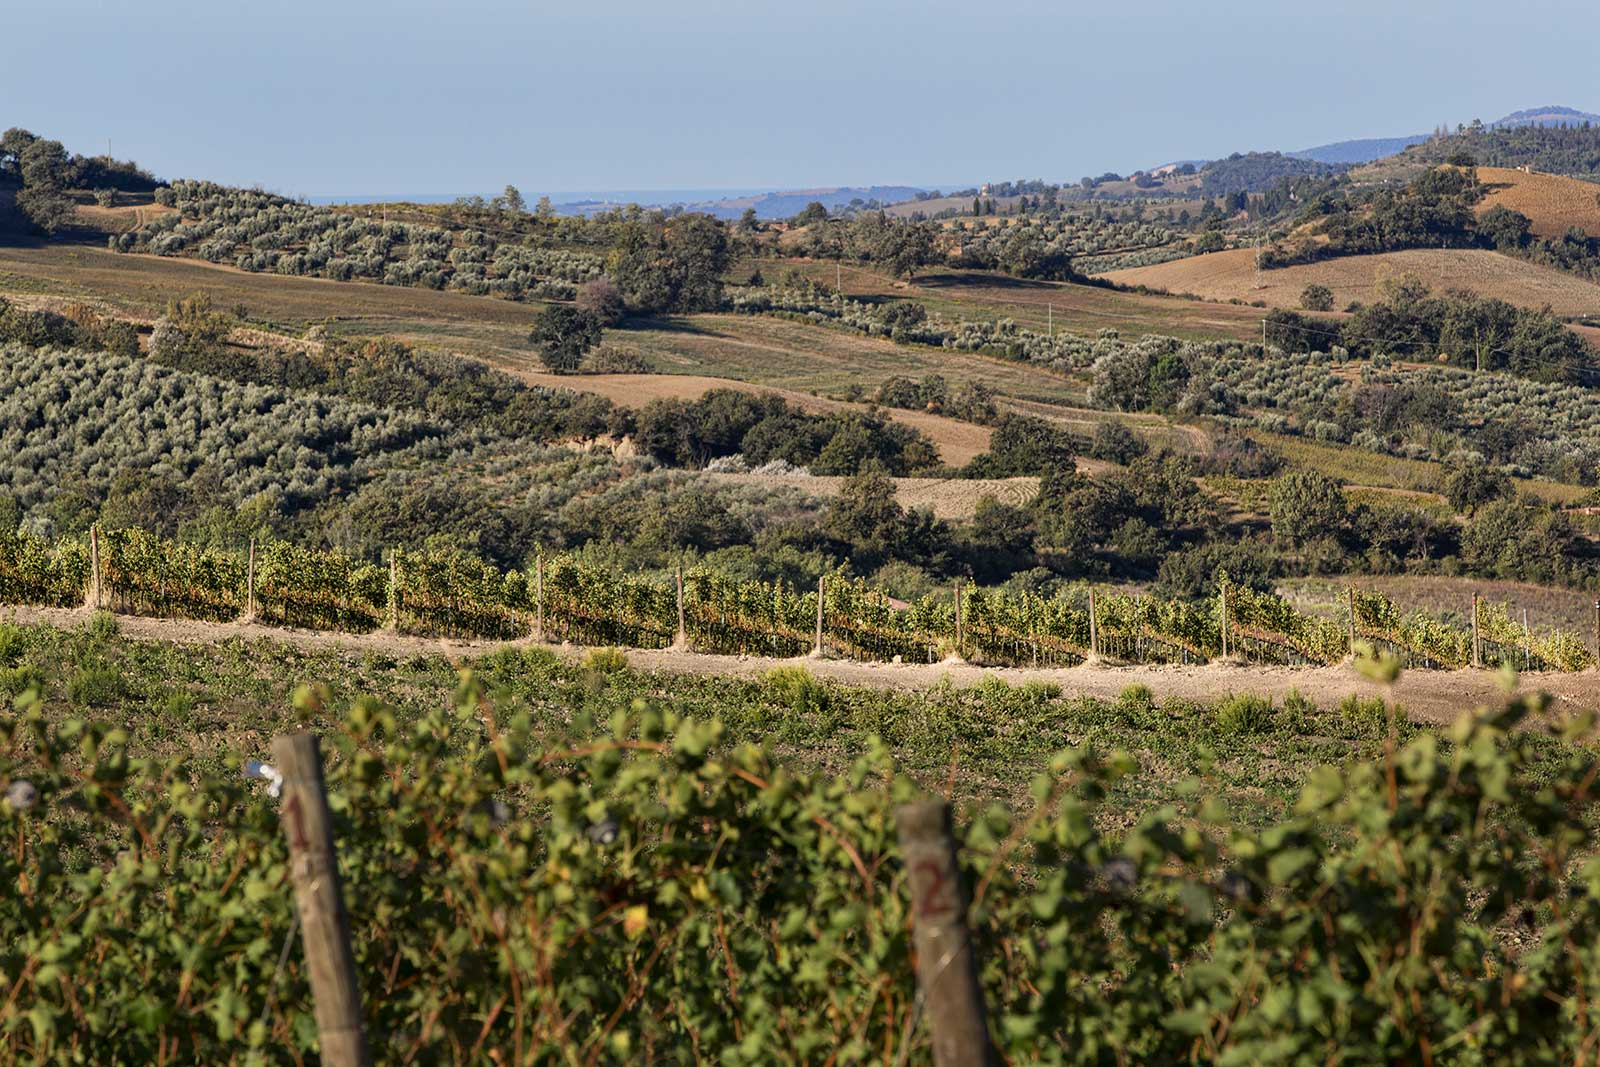 A view over the vineyards of Montecucco in Italy's Tuscany region. ©Consorzio Tutela Vini Montecucco